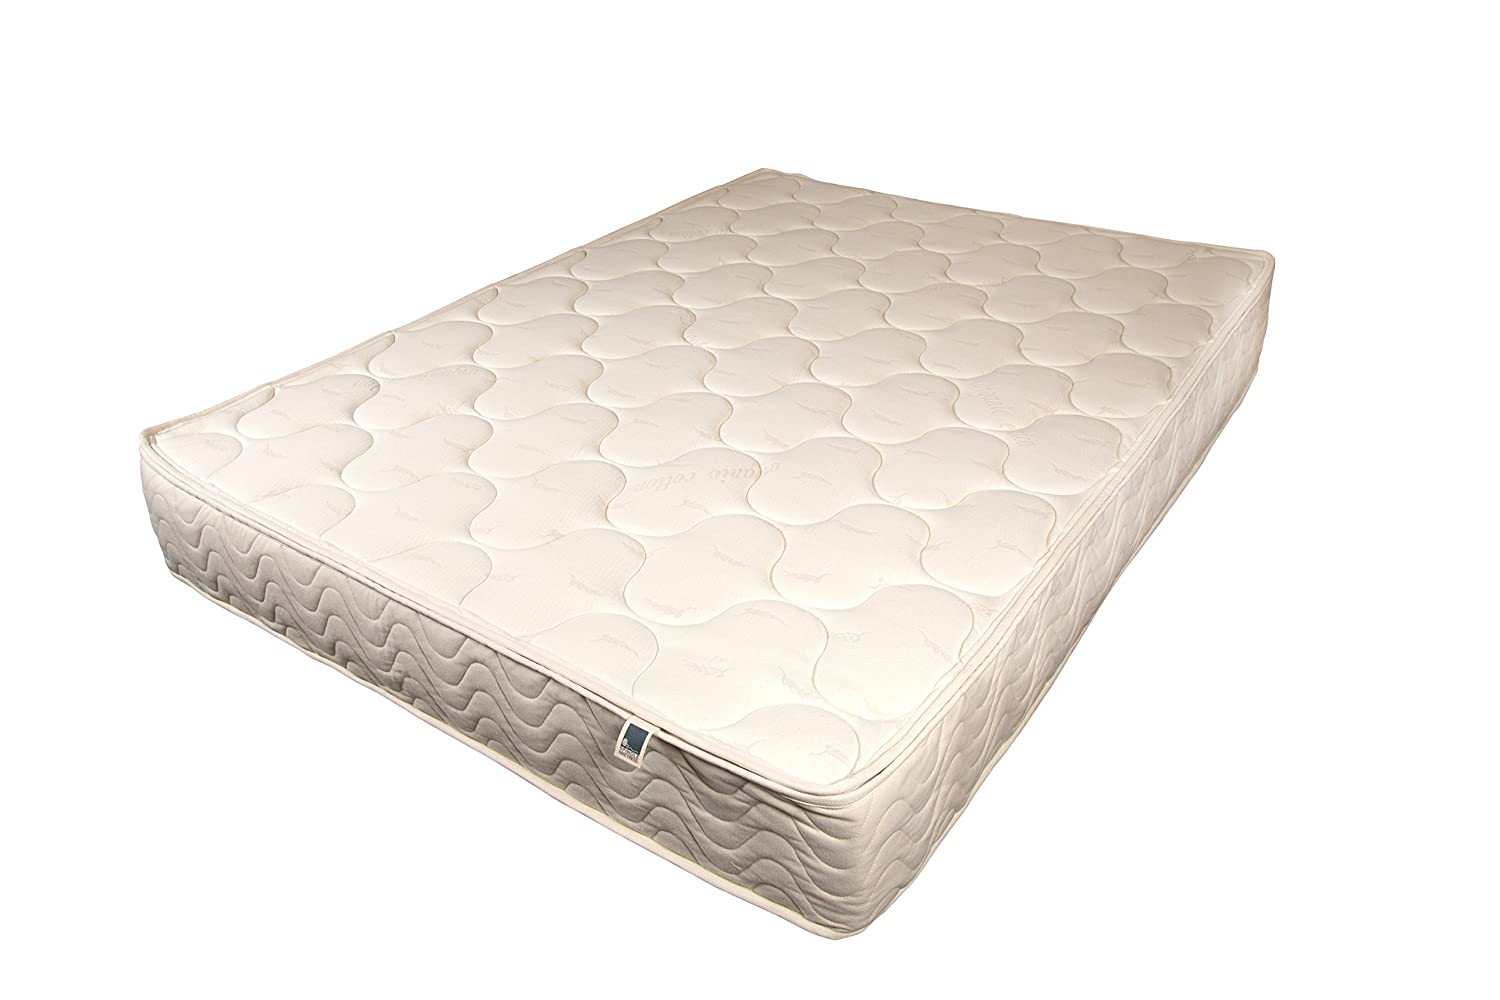 "SPINDLE Natural Latex Mattress. 10"" Dunlop Natural Latex Mattress with Zipper Cover Made with Wool and Organic Cotton. Made in The U.S.A. (Queen, Firm)"